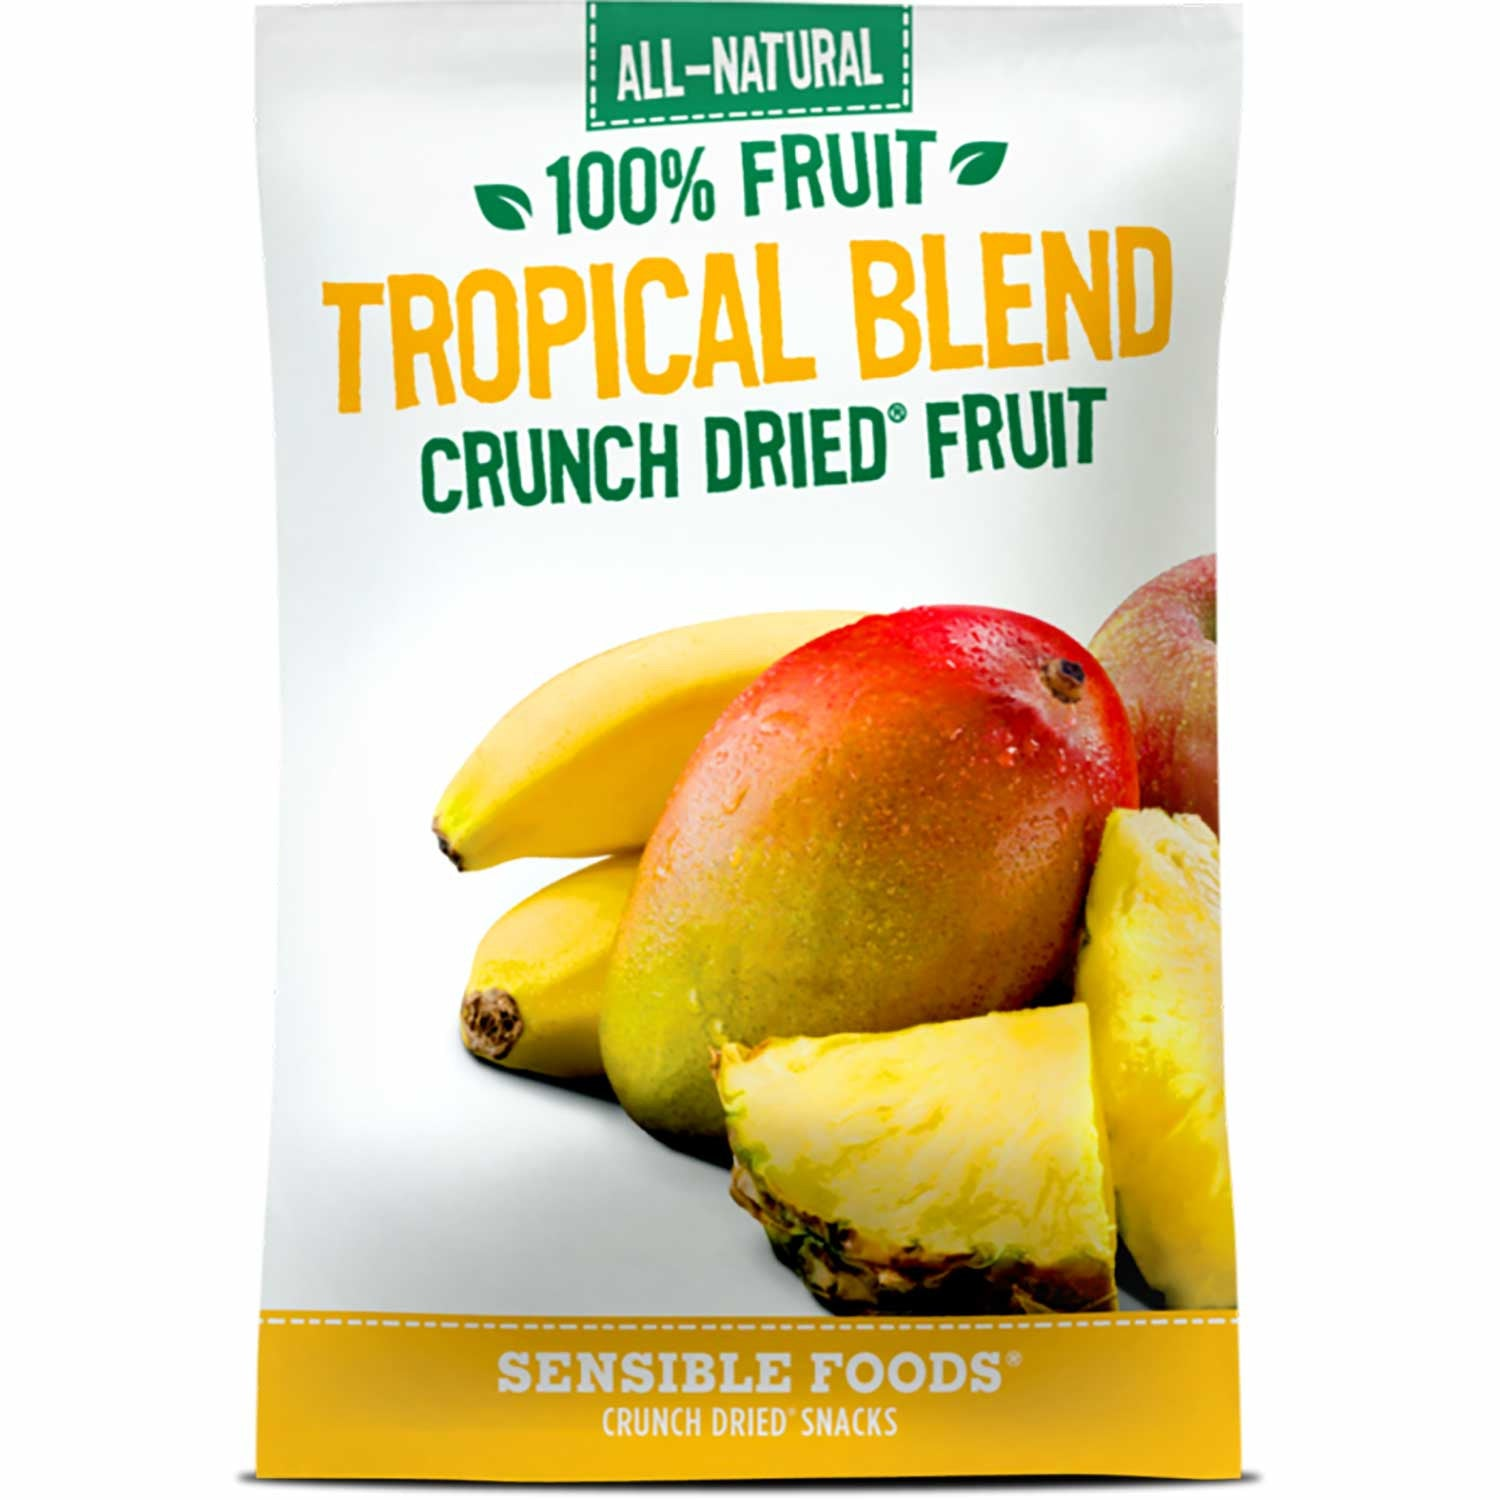 Sensible Foods All-Natural 100% Fruit Tropical Blend Crunch Dried Fruit, 37g.-NaturesWisdom